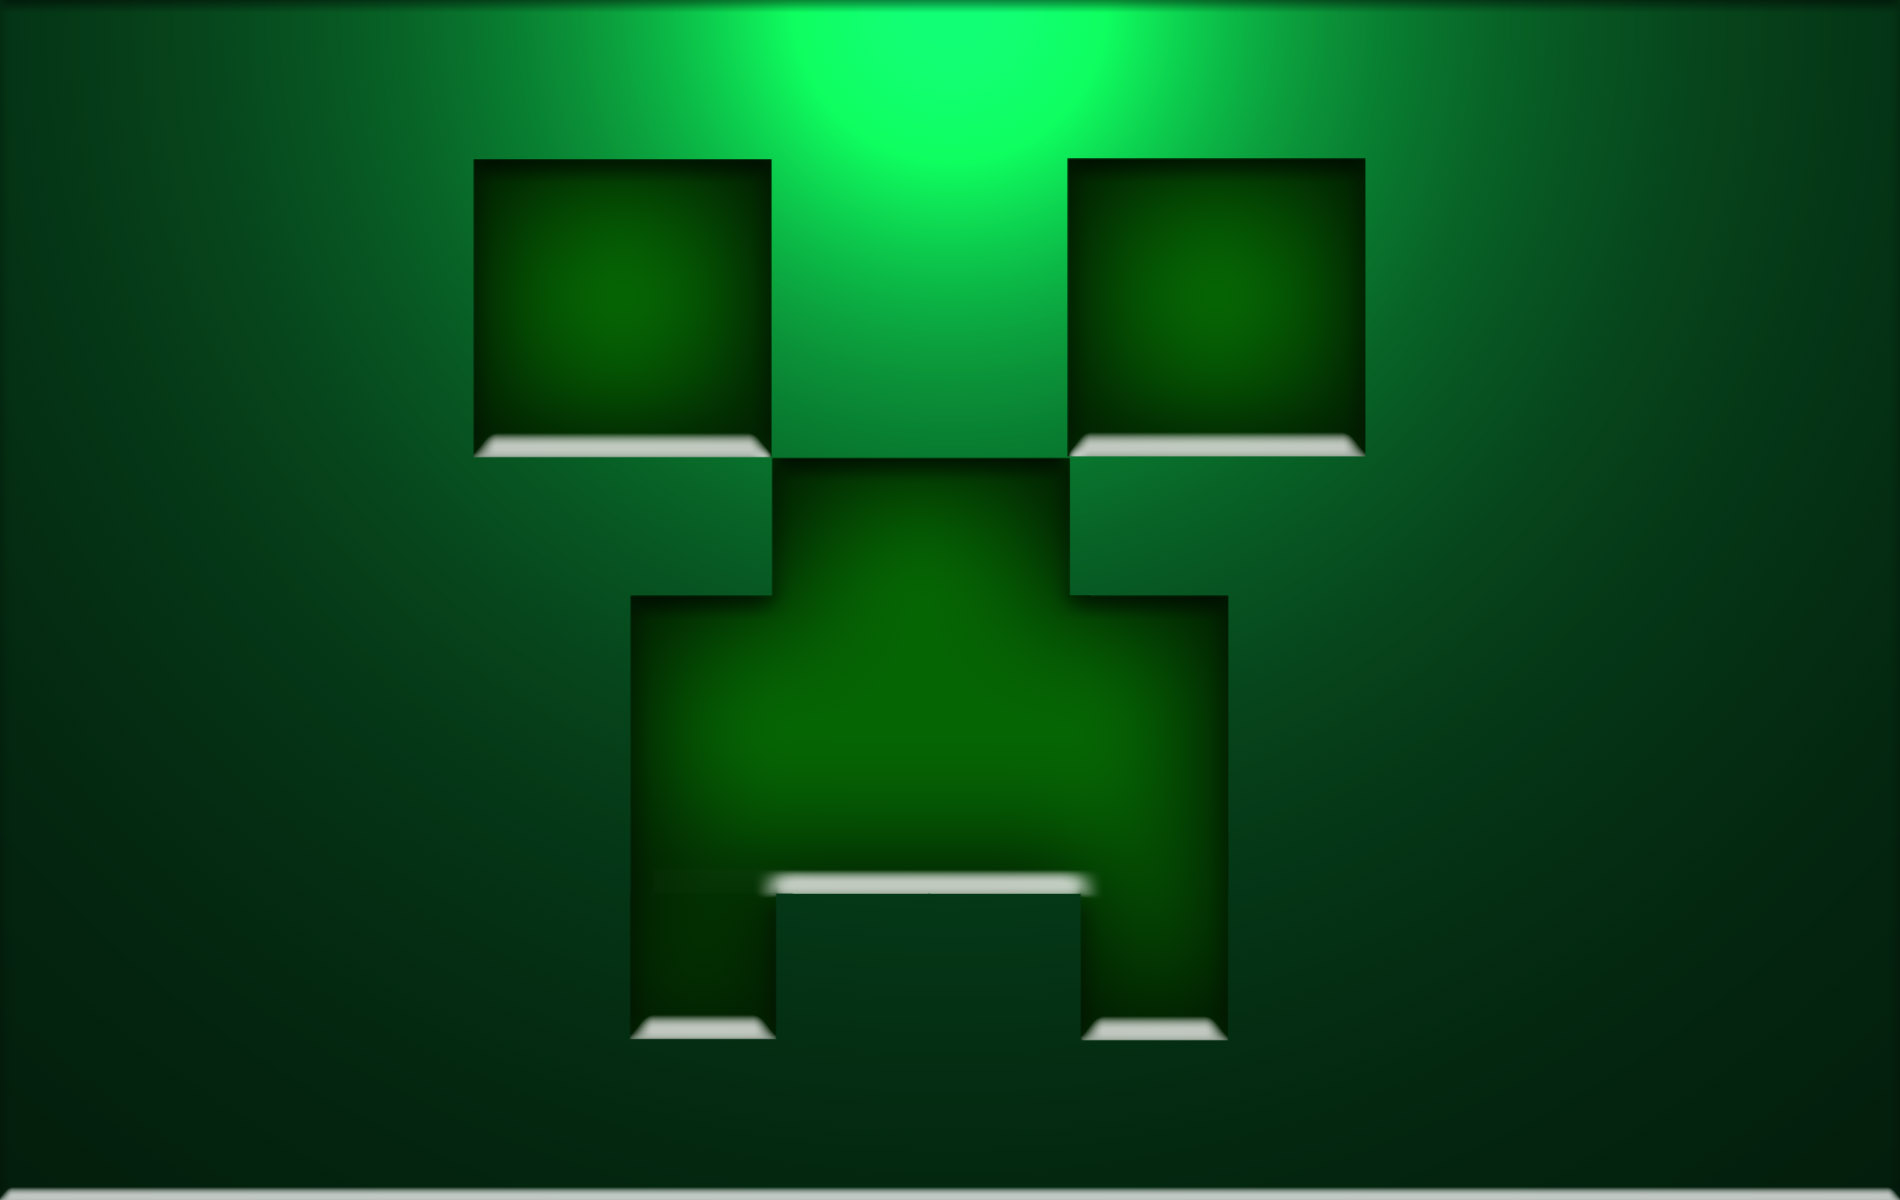 Creeper-Minecraft-Wallpapers-3D-HD-Wallpaper.jpg